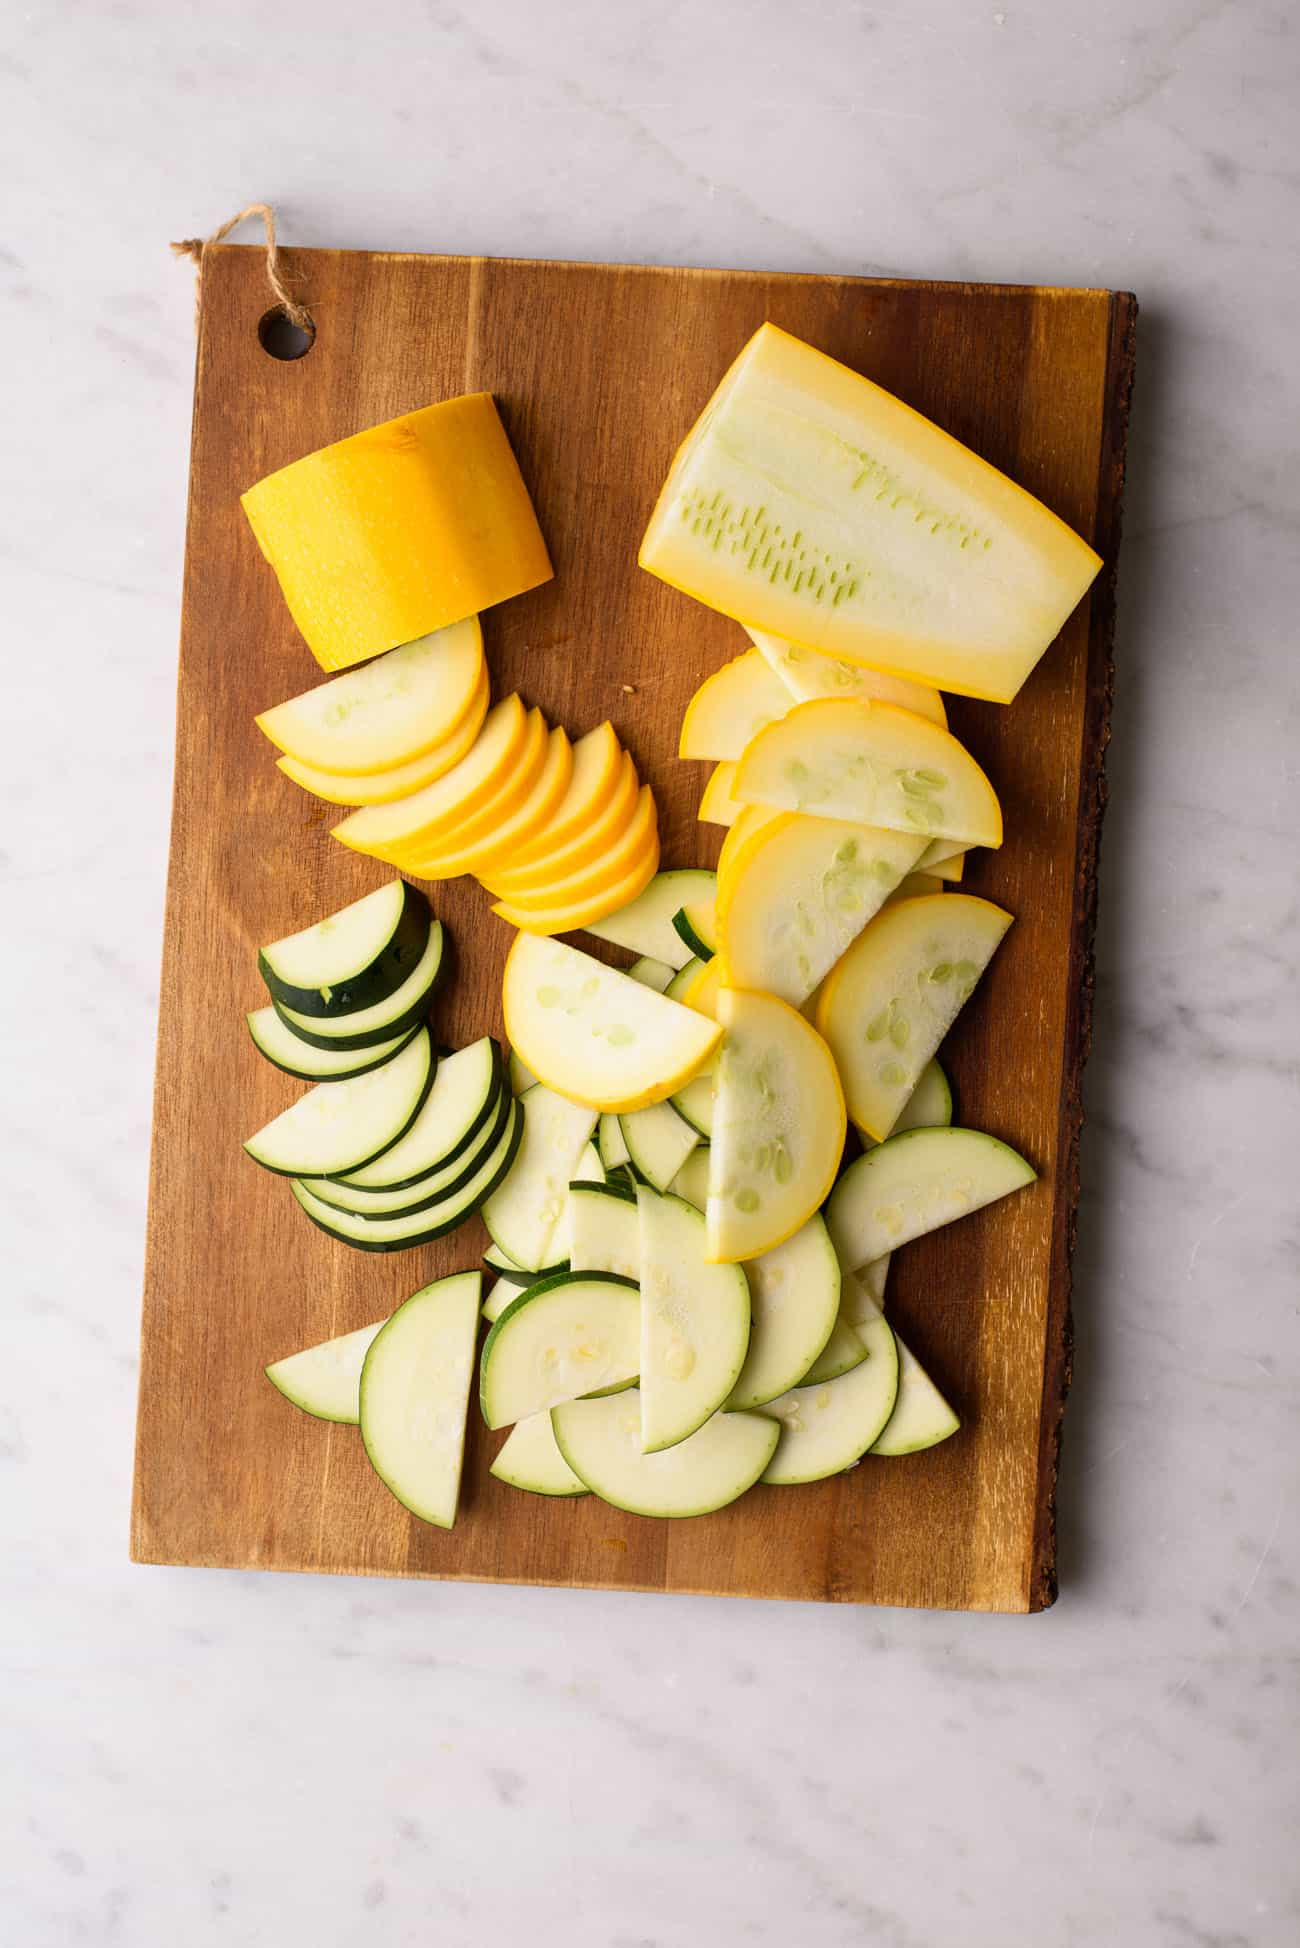 Zucchini and yellow summer squash sliced into half-moons on a wooden board